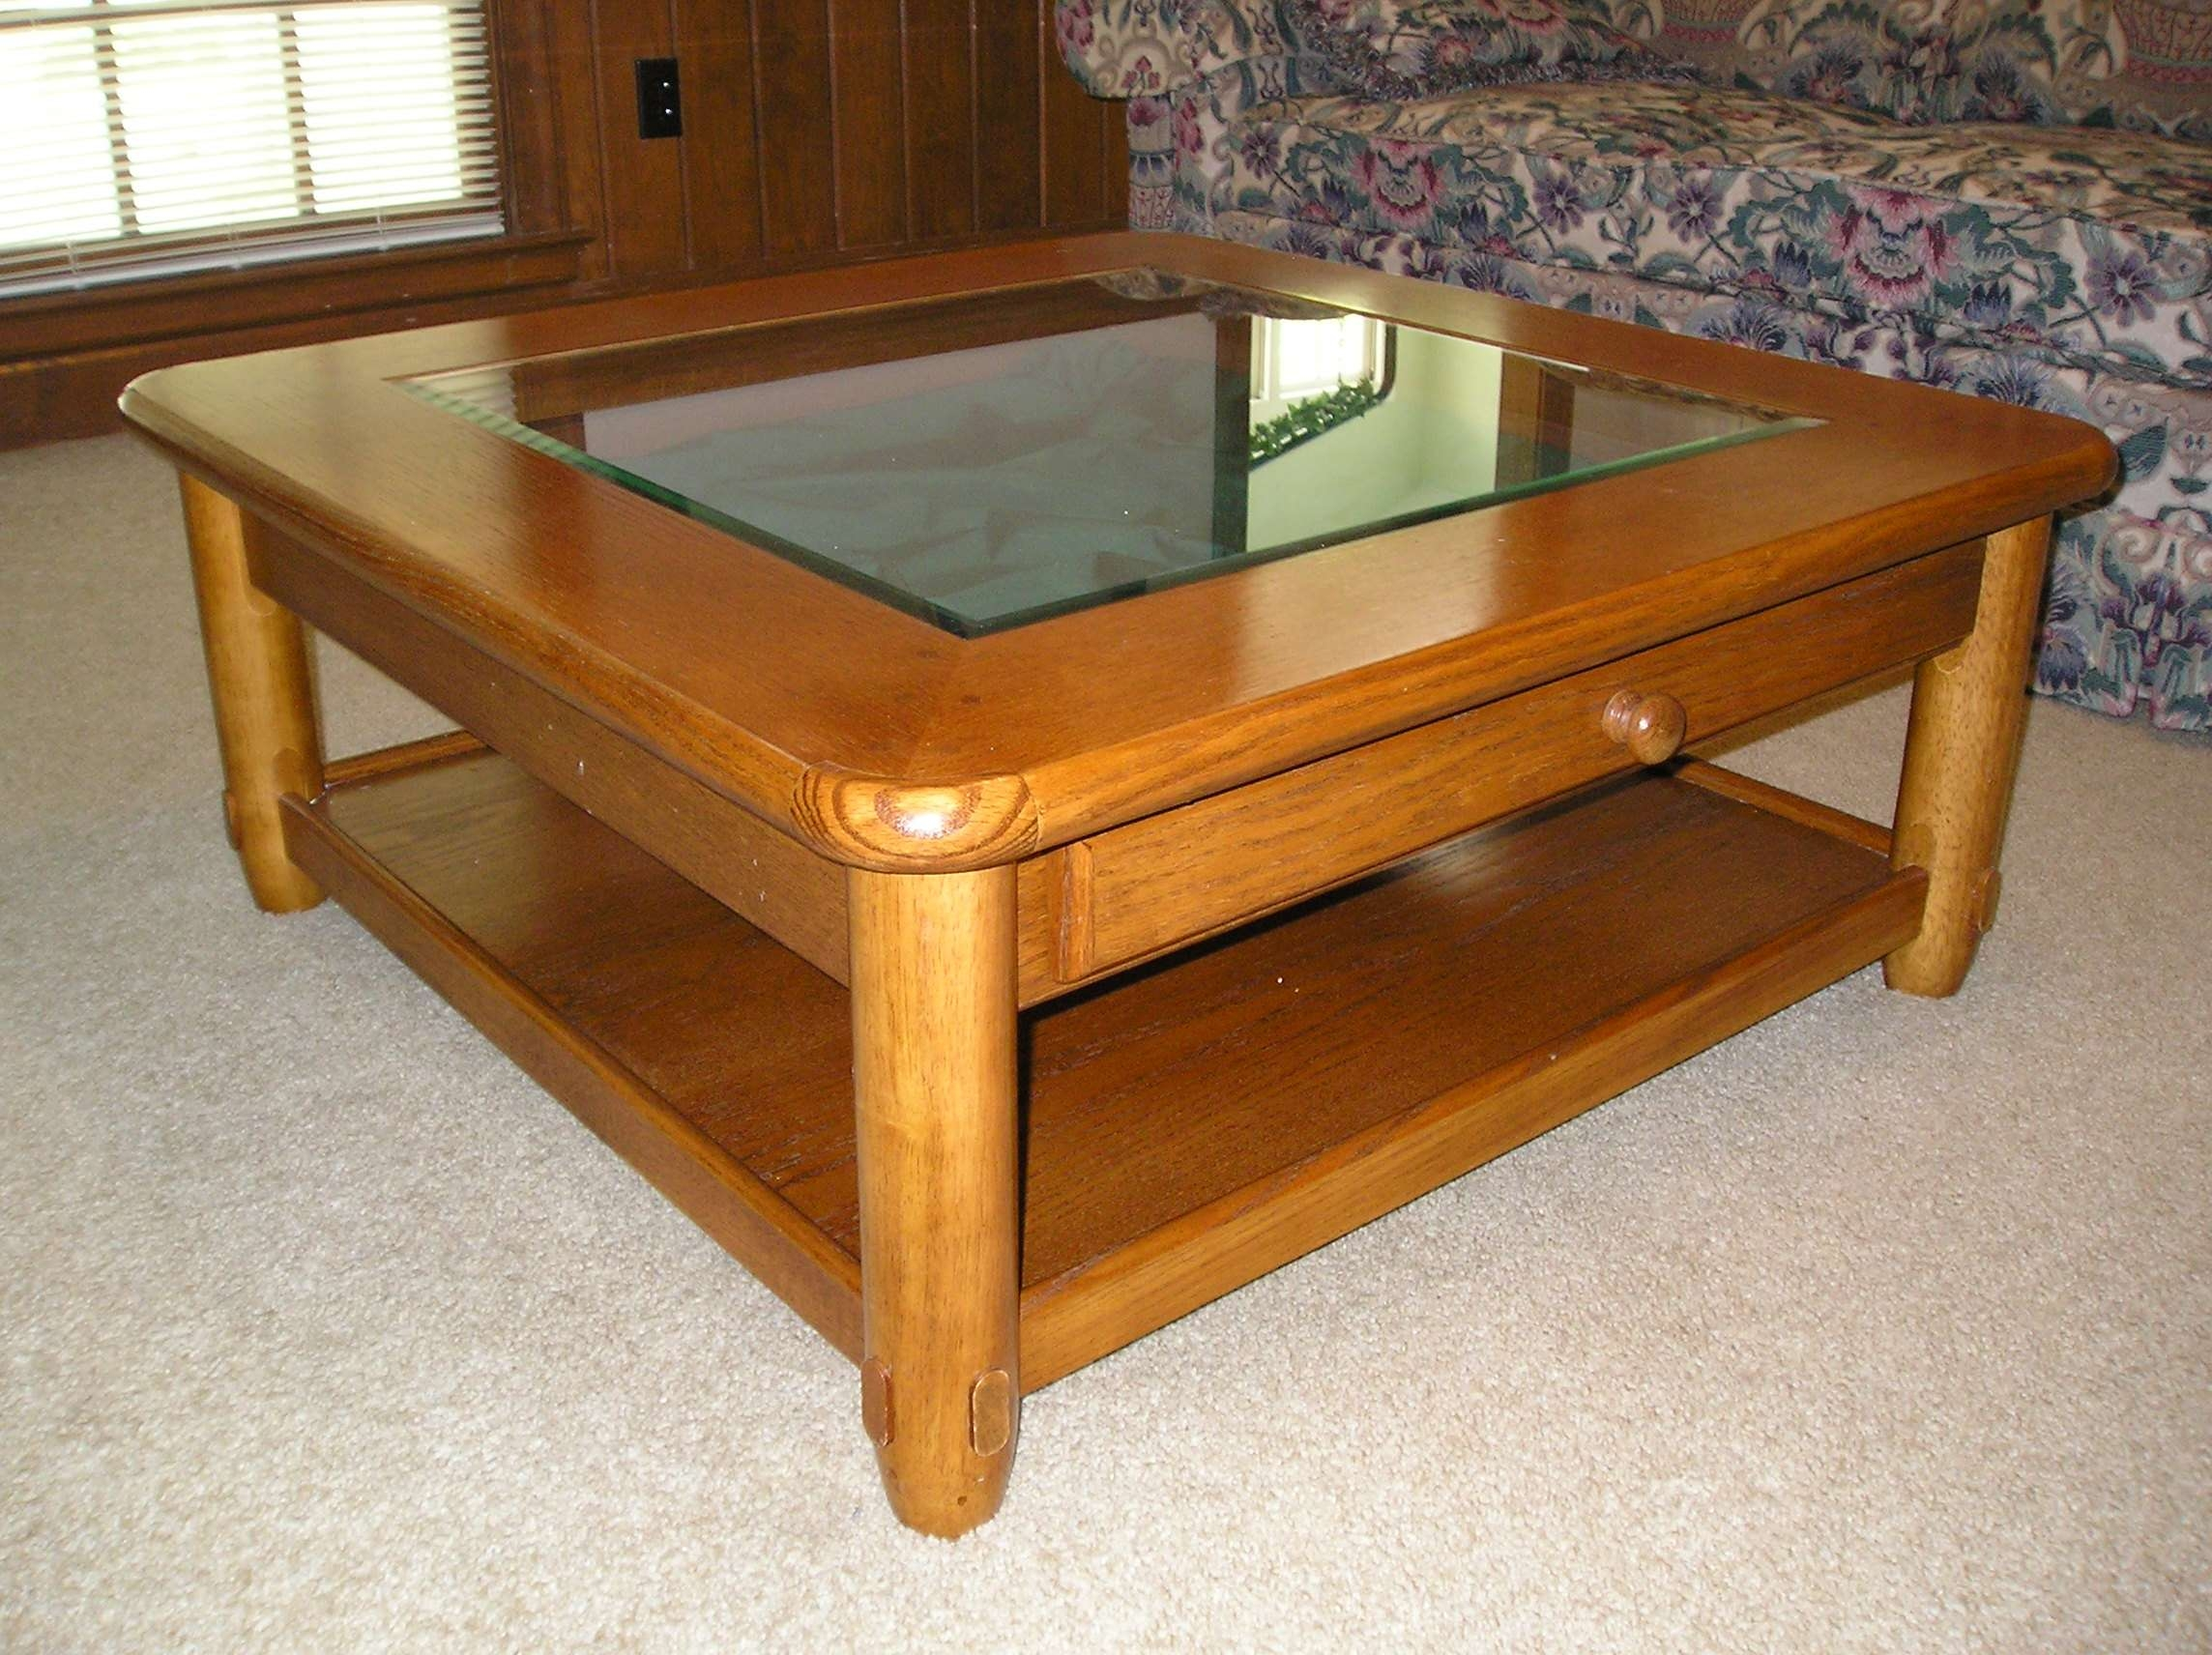 Fabulous Oak Coffee Table With Glass Top On Interior Home Design With Most Recent Oak And Glass Coffee Table (View 17 of 20)